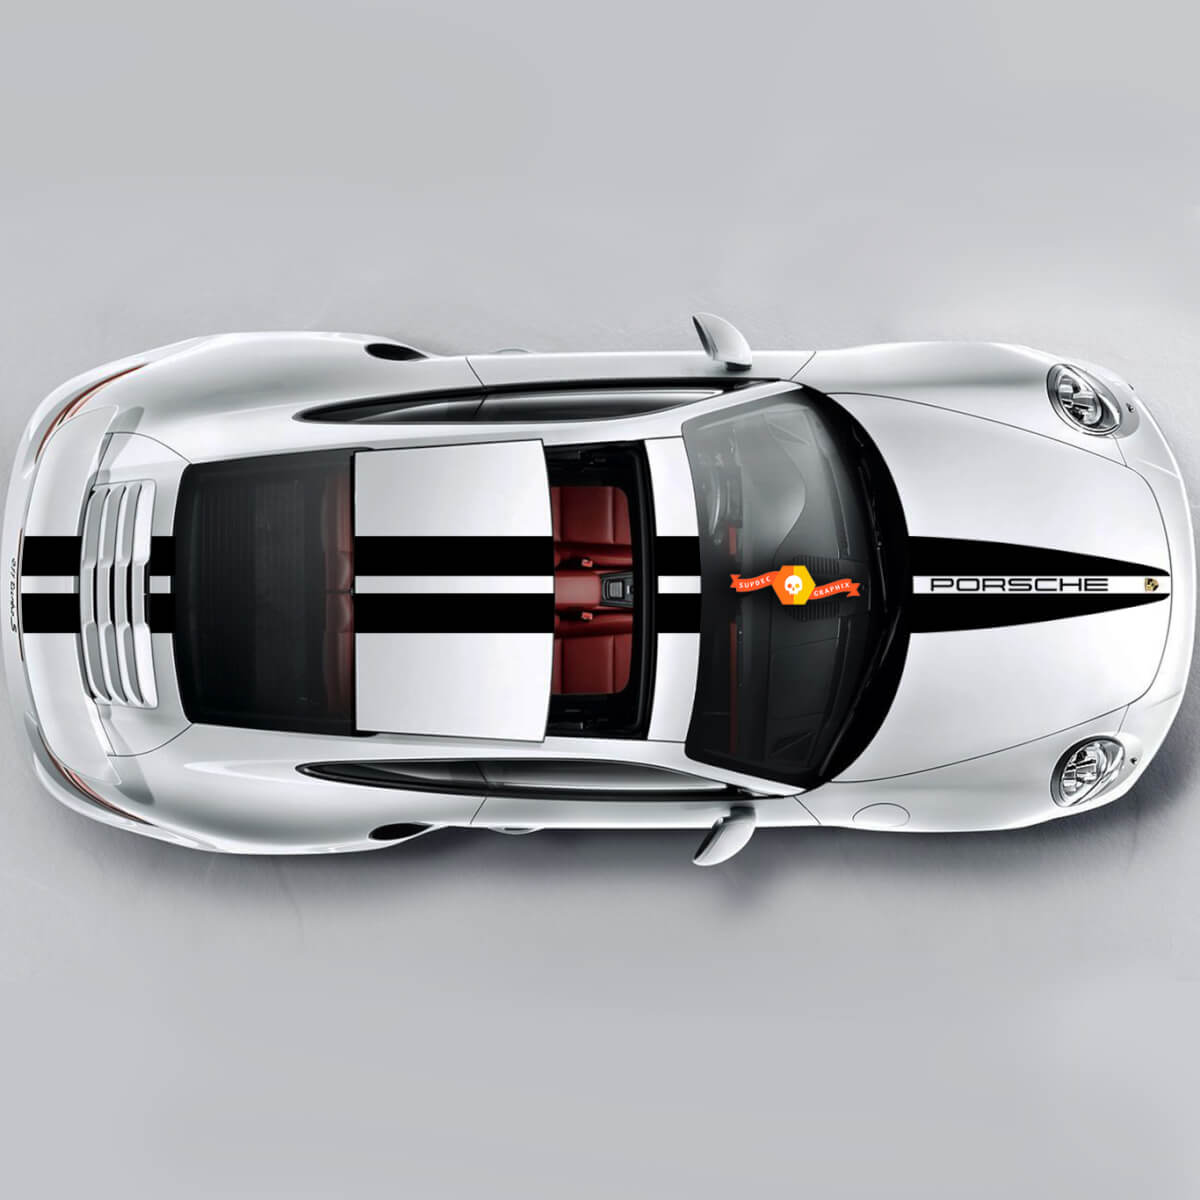 New Double Stripes Over The Top For Carrera Cayman  Boxster Or Any Porsche